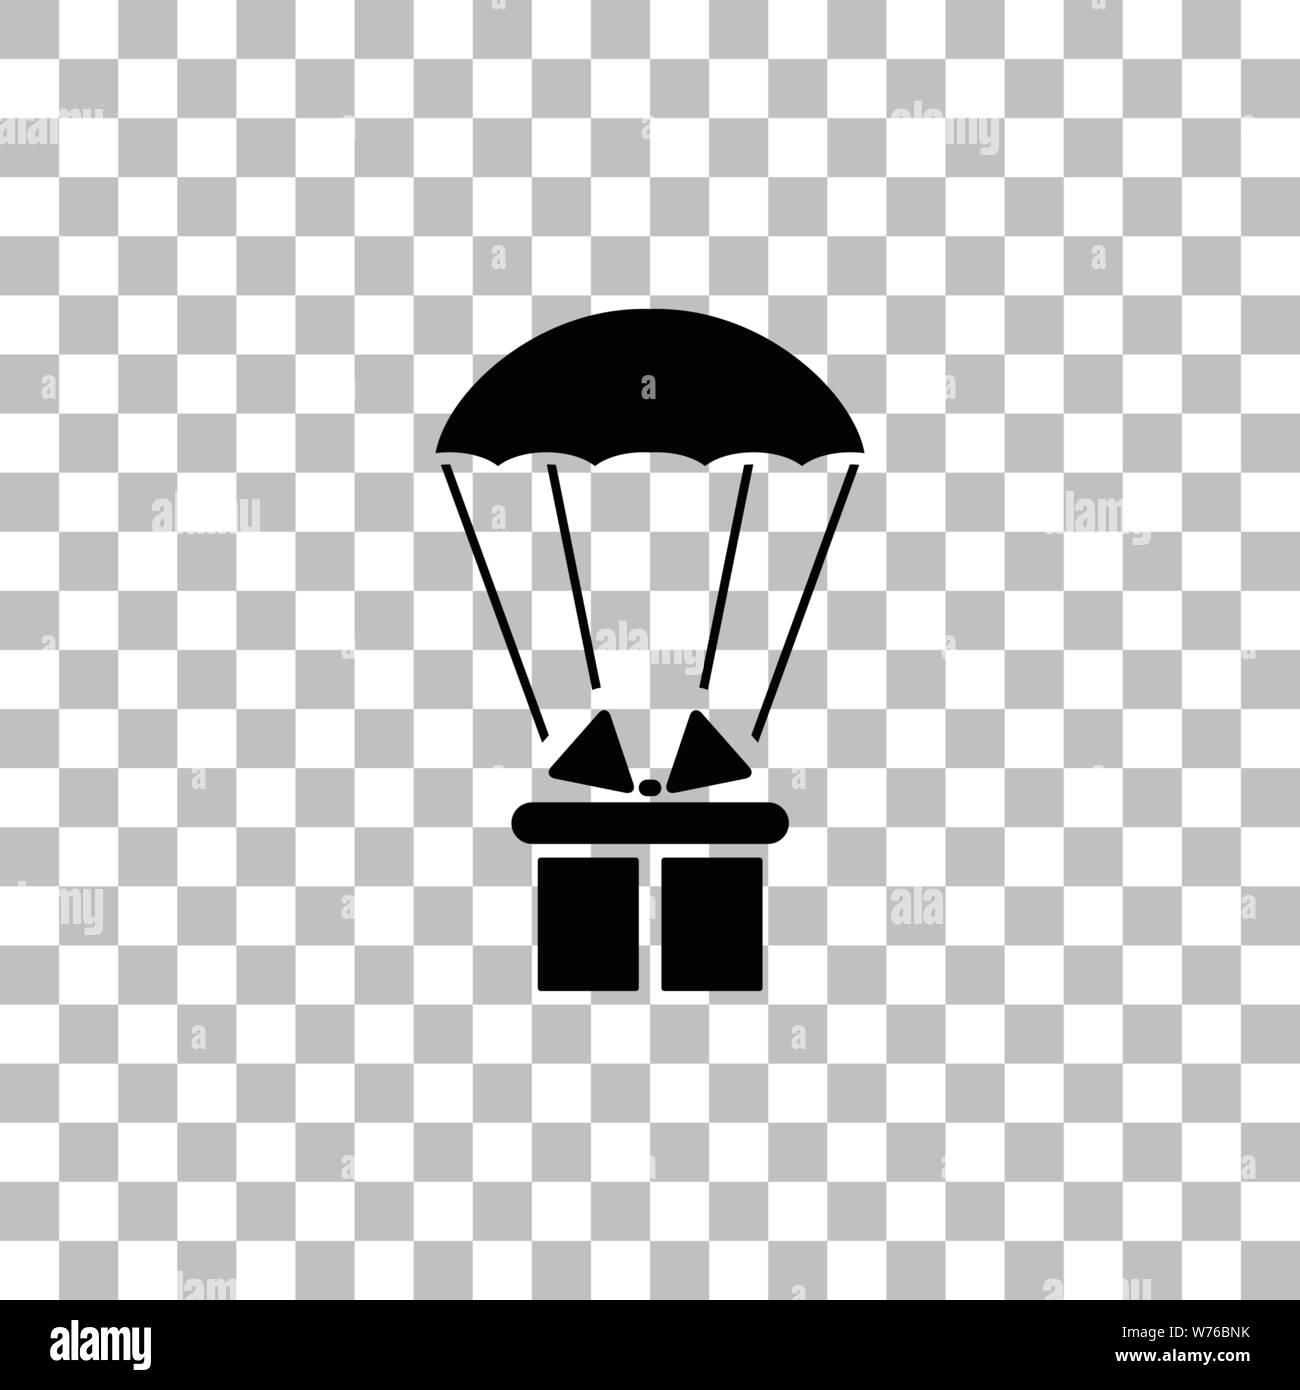 Parachute Gift Box Package Black Flat Icon On A Transparent Background Pictogram For Your Project Stock Vector Image Art Alamy